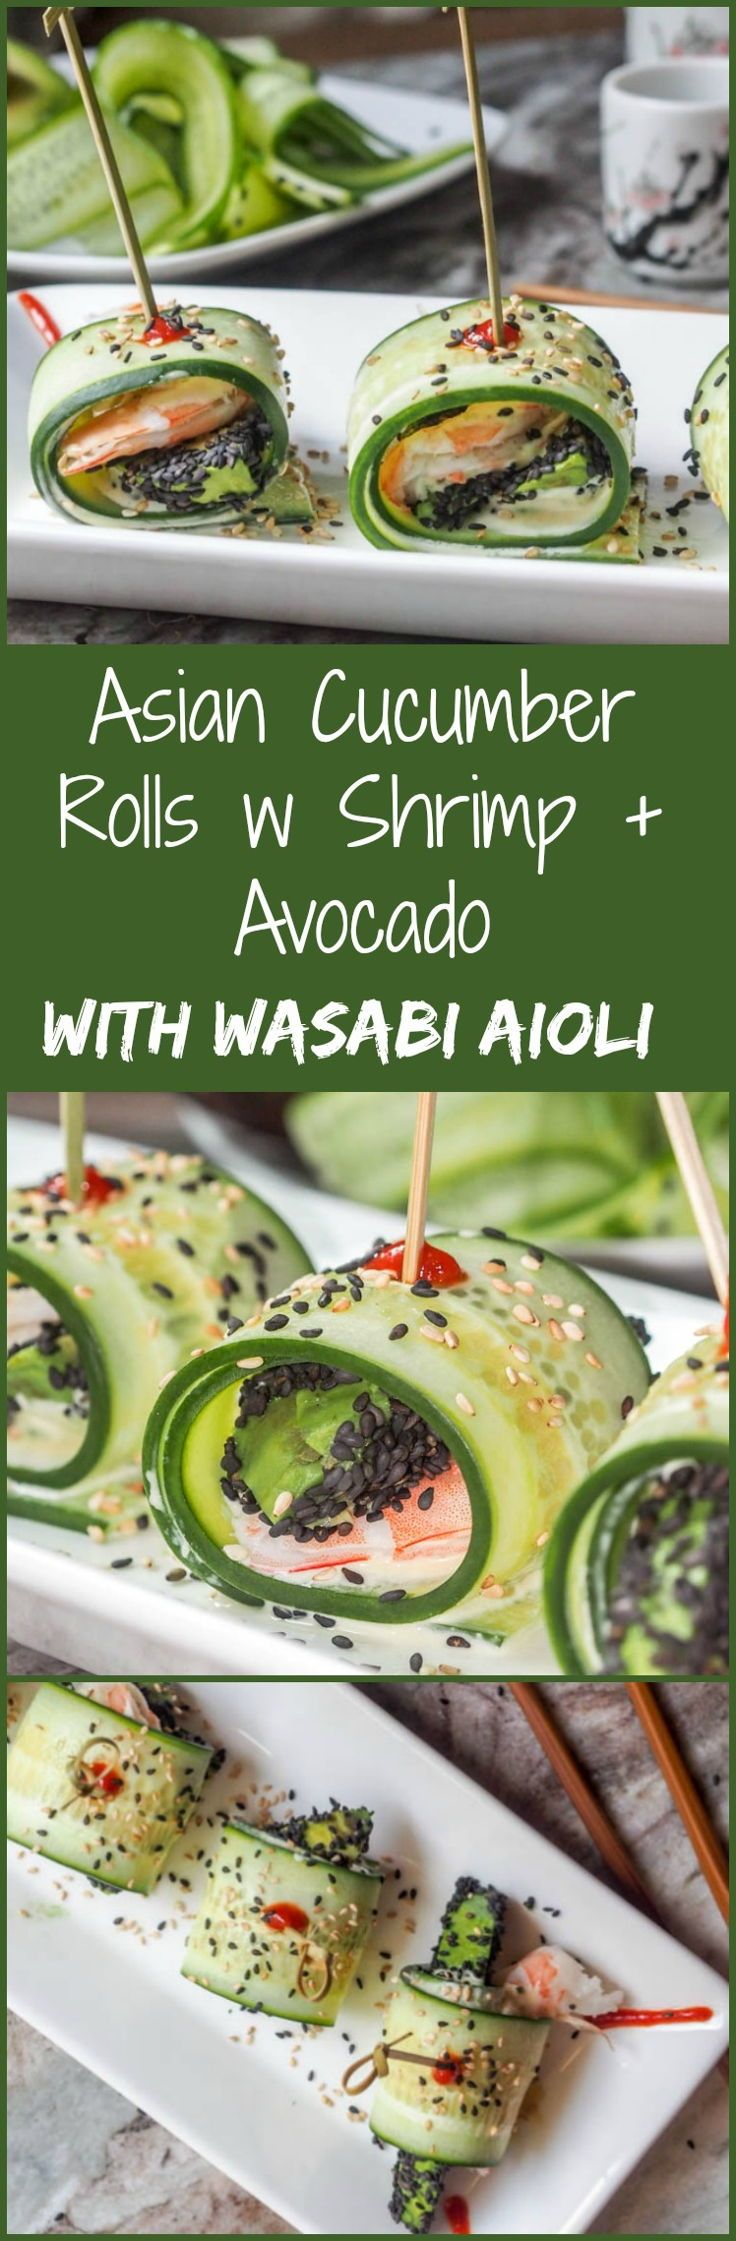 These Asian Cucumber Rolls with Shrimp + Sesame Avocado are served with a Wasabi Aioli and simply brimming with fresh crunchy flavors. The definition of summer flavors. Low carb and healthy. Serve as a light lunch or appetizer. Gluten Free and Dairy Free.